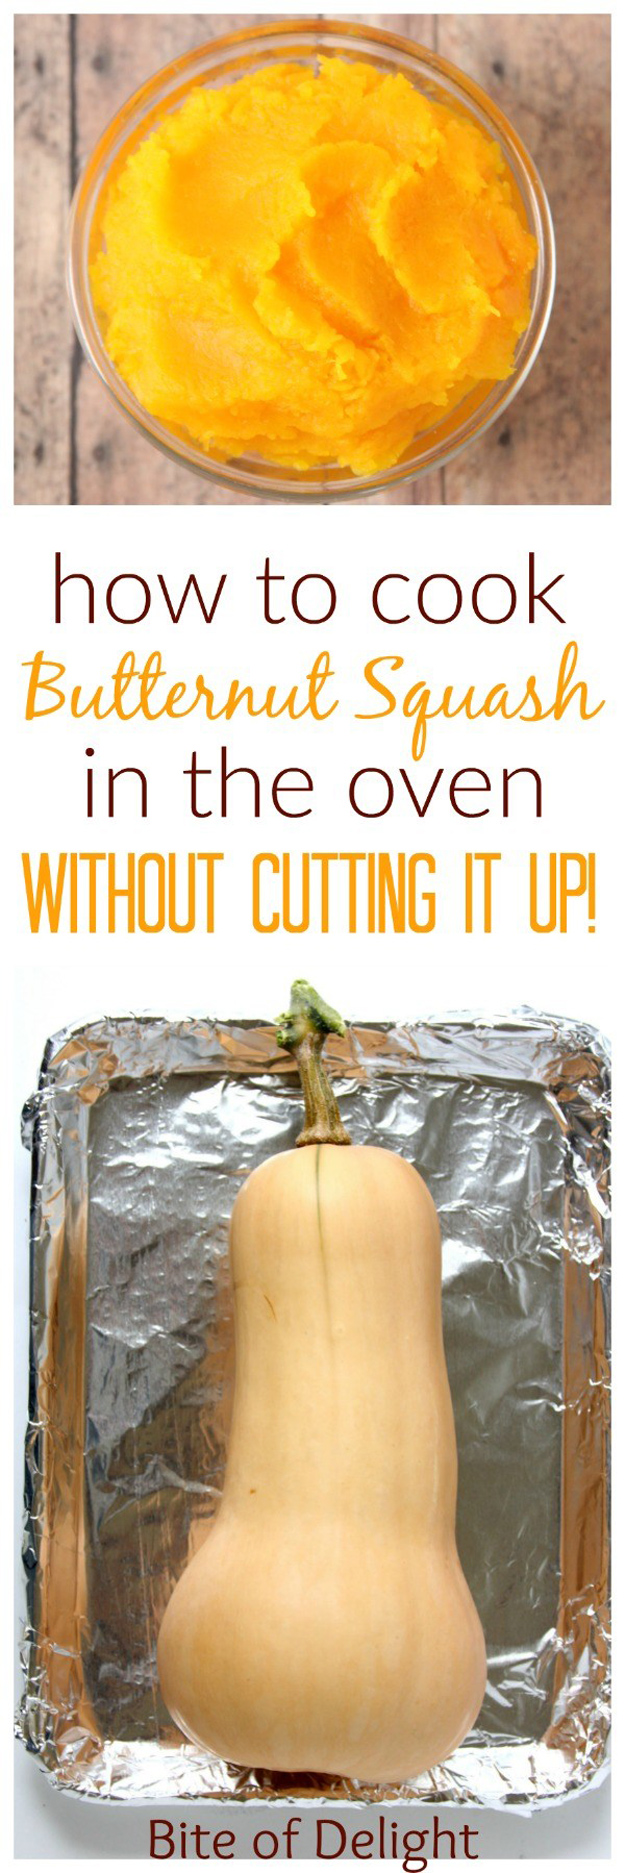 Coolest Cooking Hacks, Tips and Tricks for Easy Meal Prep, Recipe Shortcuts and Quick Ideas for Food | Cook Butternut Squash Without Cutting It